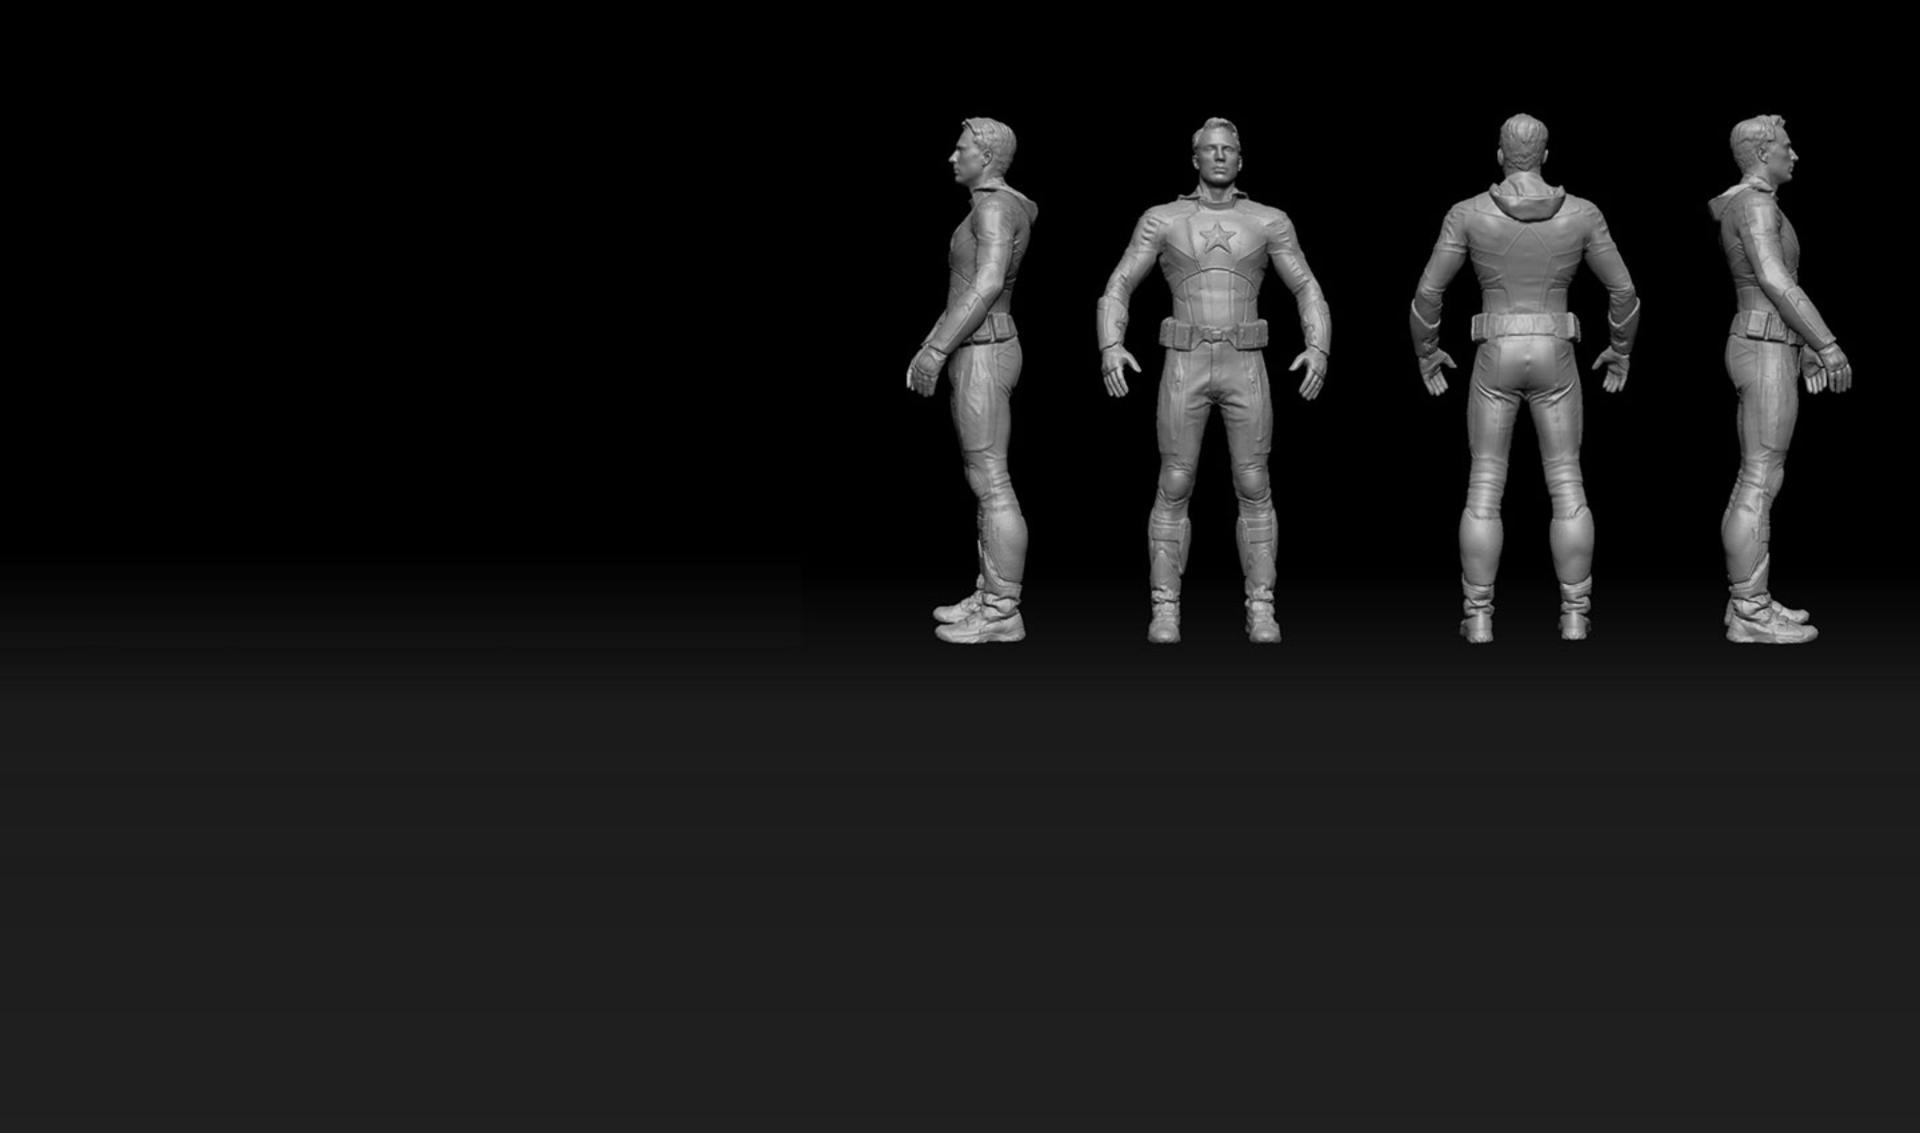 Accurate 3D body scans for use in entertainment and toy design and manufacturing